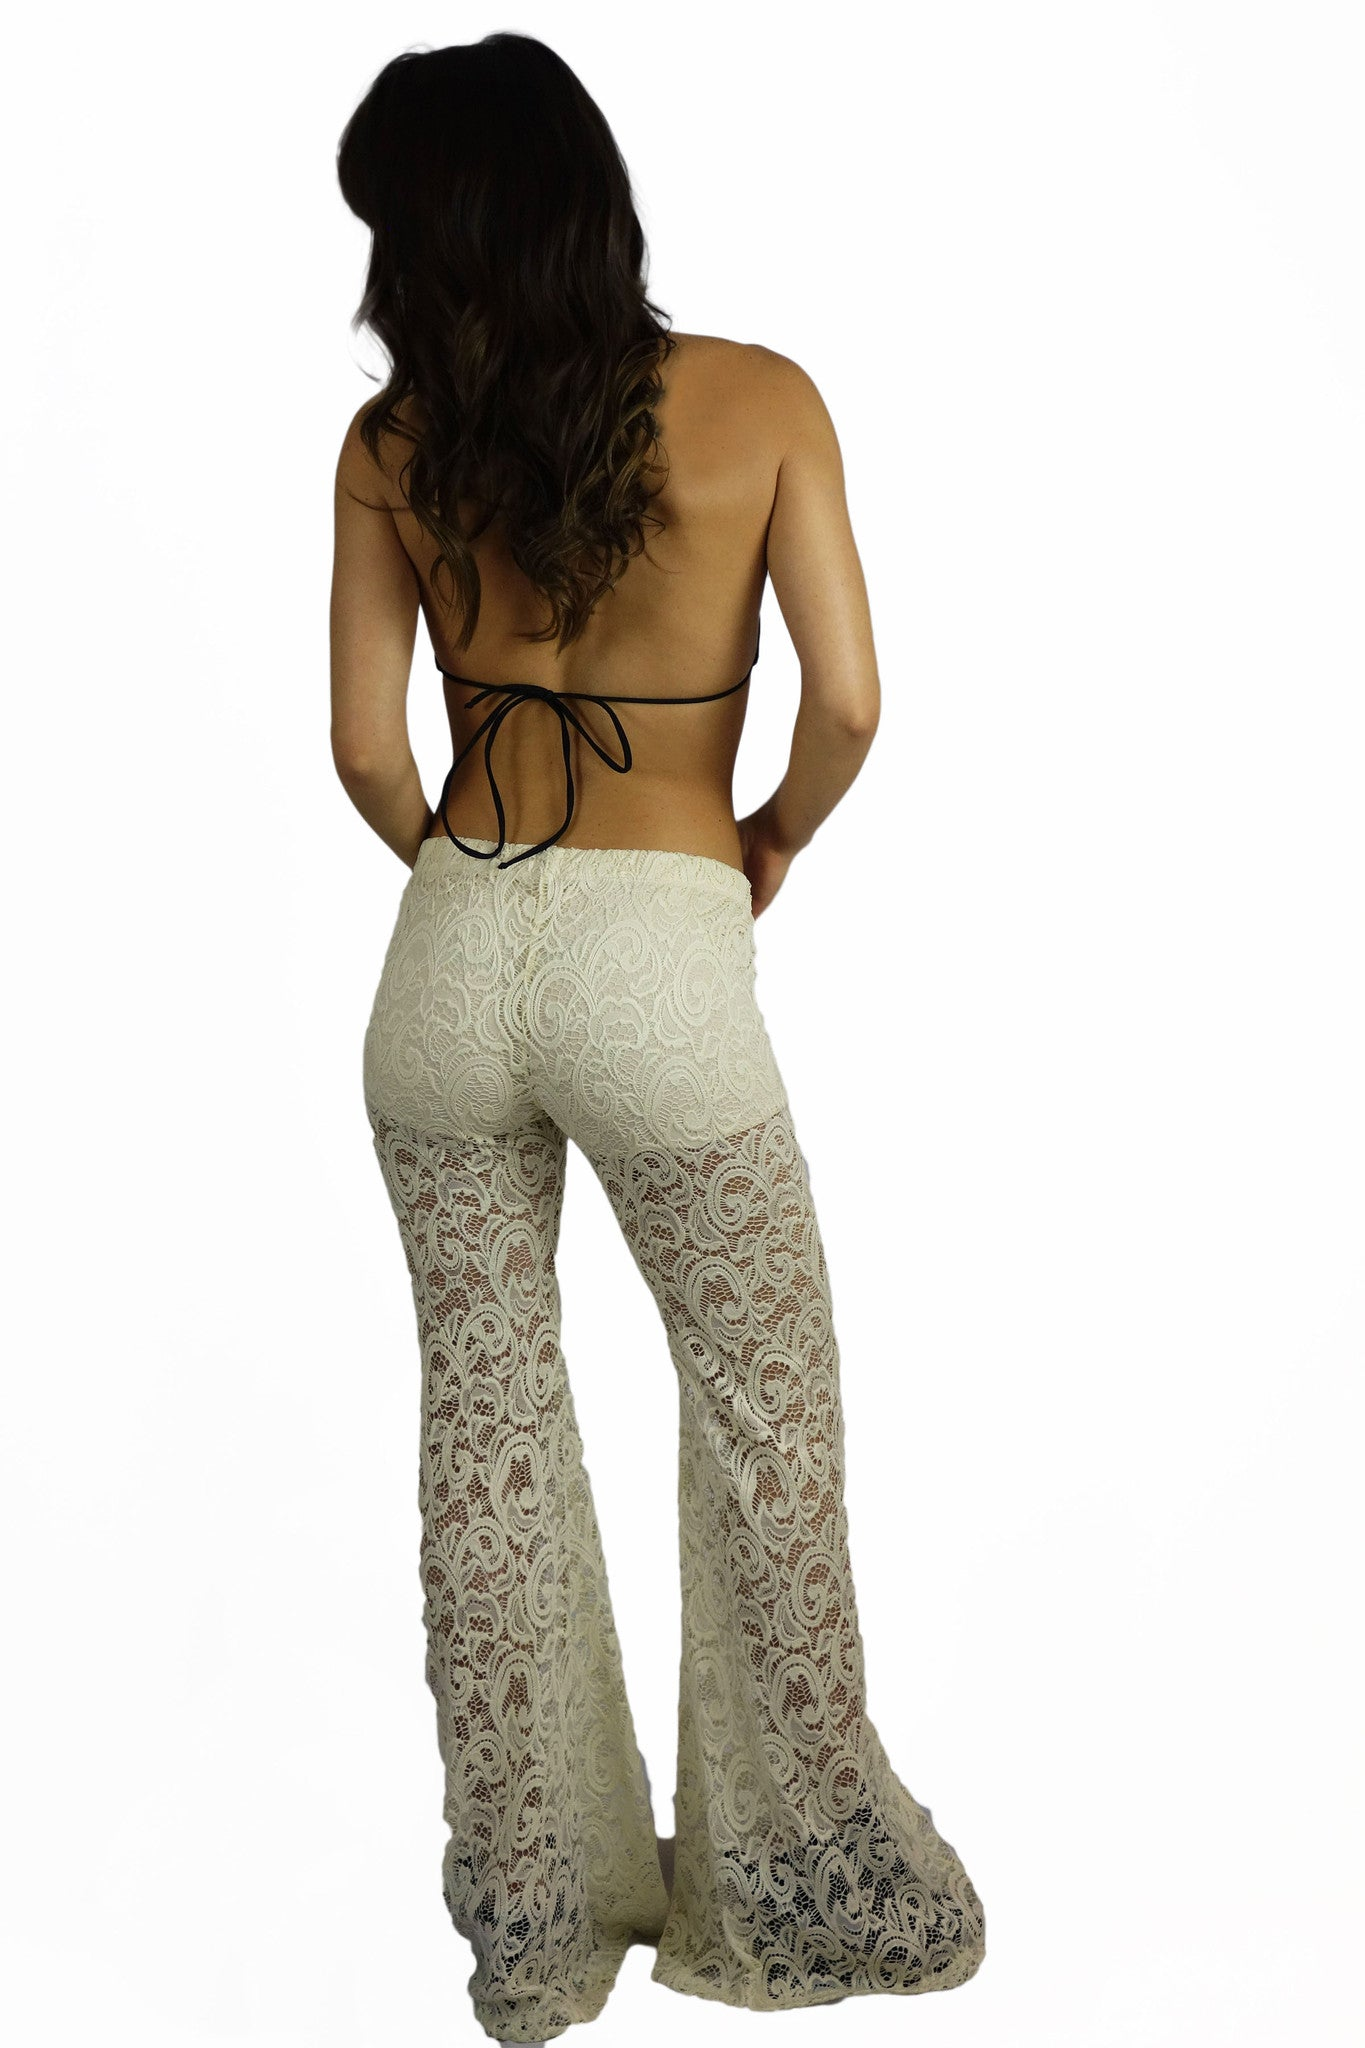 Vintage Havana Ivory Stretch Crochet Bell Bottom Pants - BOTTOMS - VINTAGE HAVANA - Free Vibrationz - 3